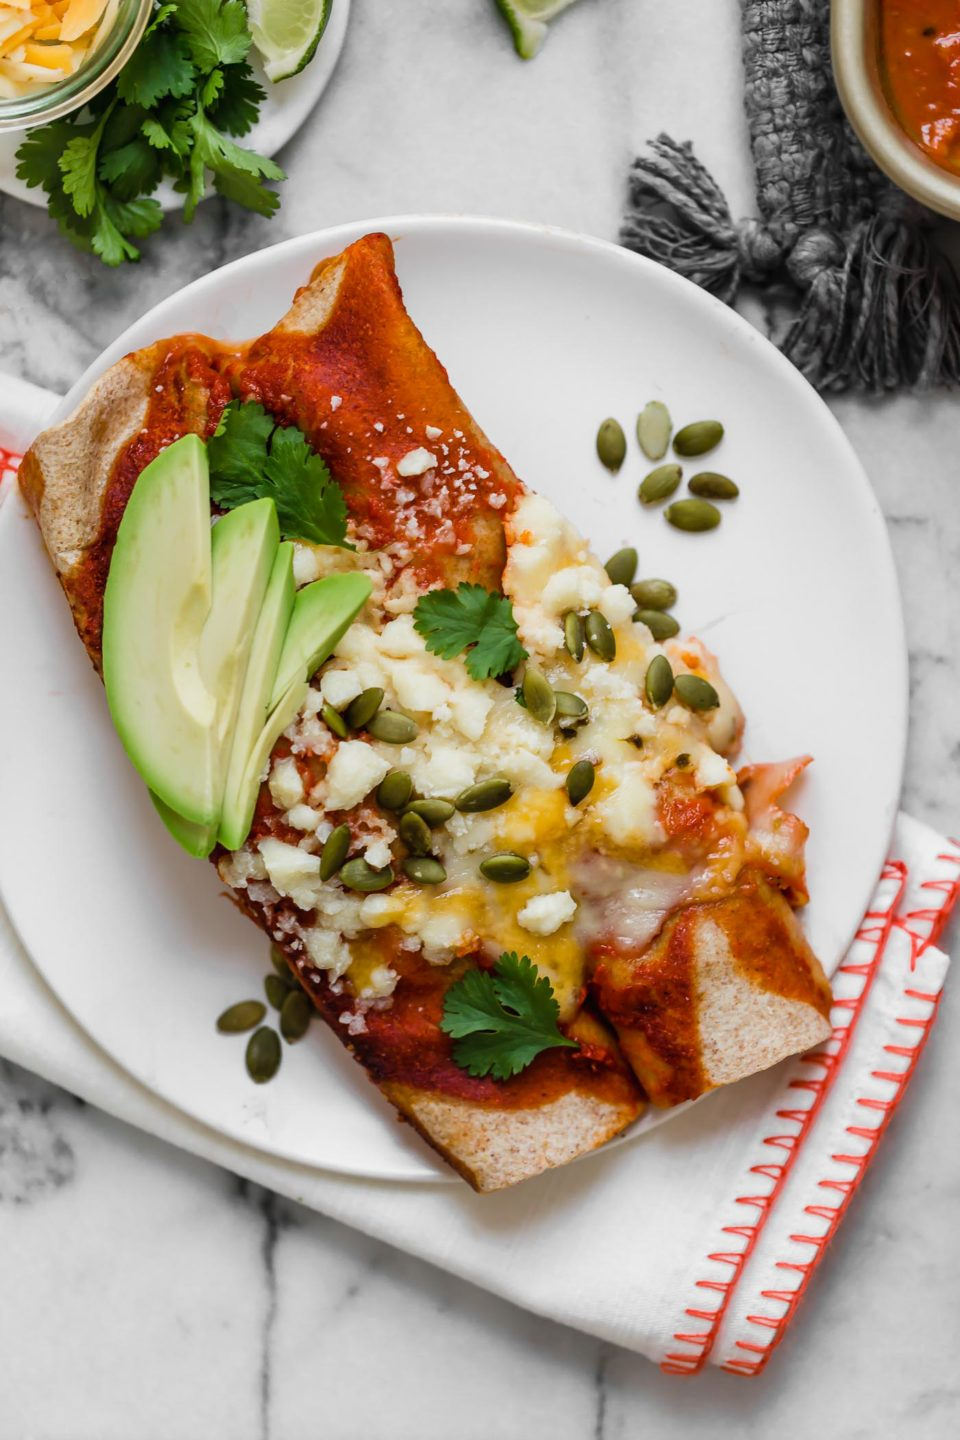 Two enchiladas sit on top of a white dinner plate. The enchilada is topped with sliced avocado, cheese, and pepitas. The plate sits on top of a white napkin with red stitching along the edges and the napkin & plate sit on top of a white & gray marbled surface.